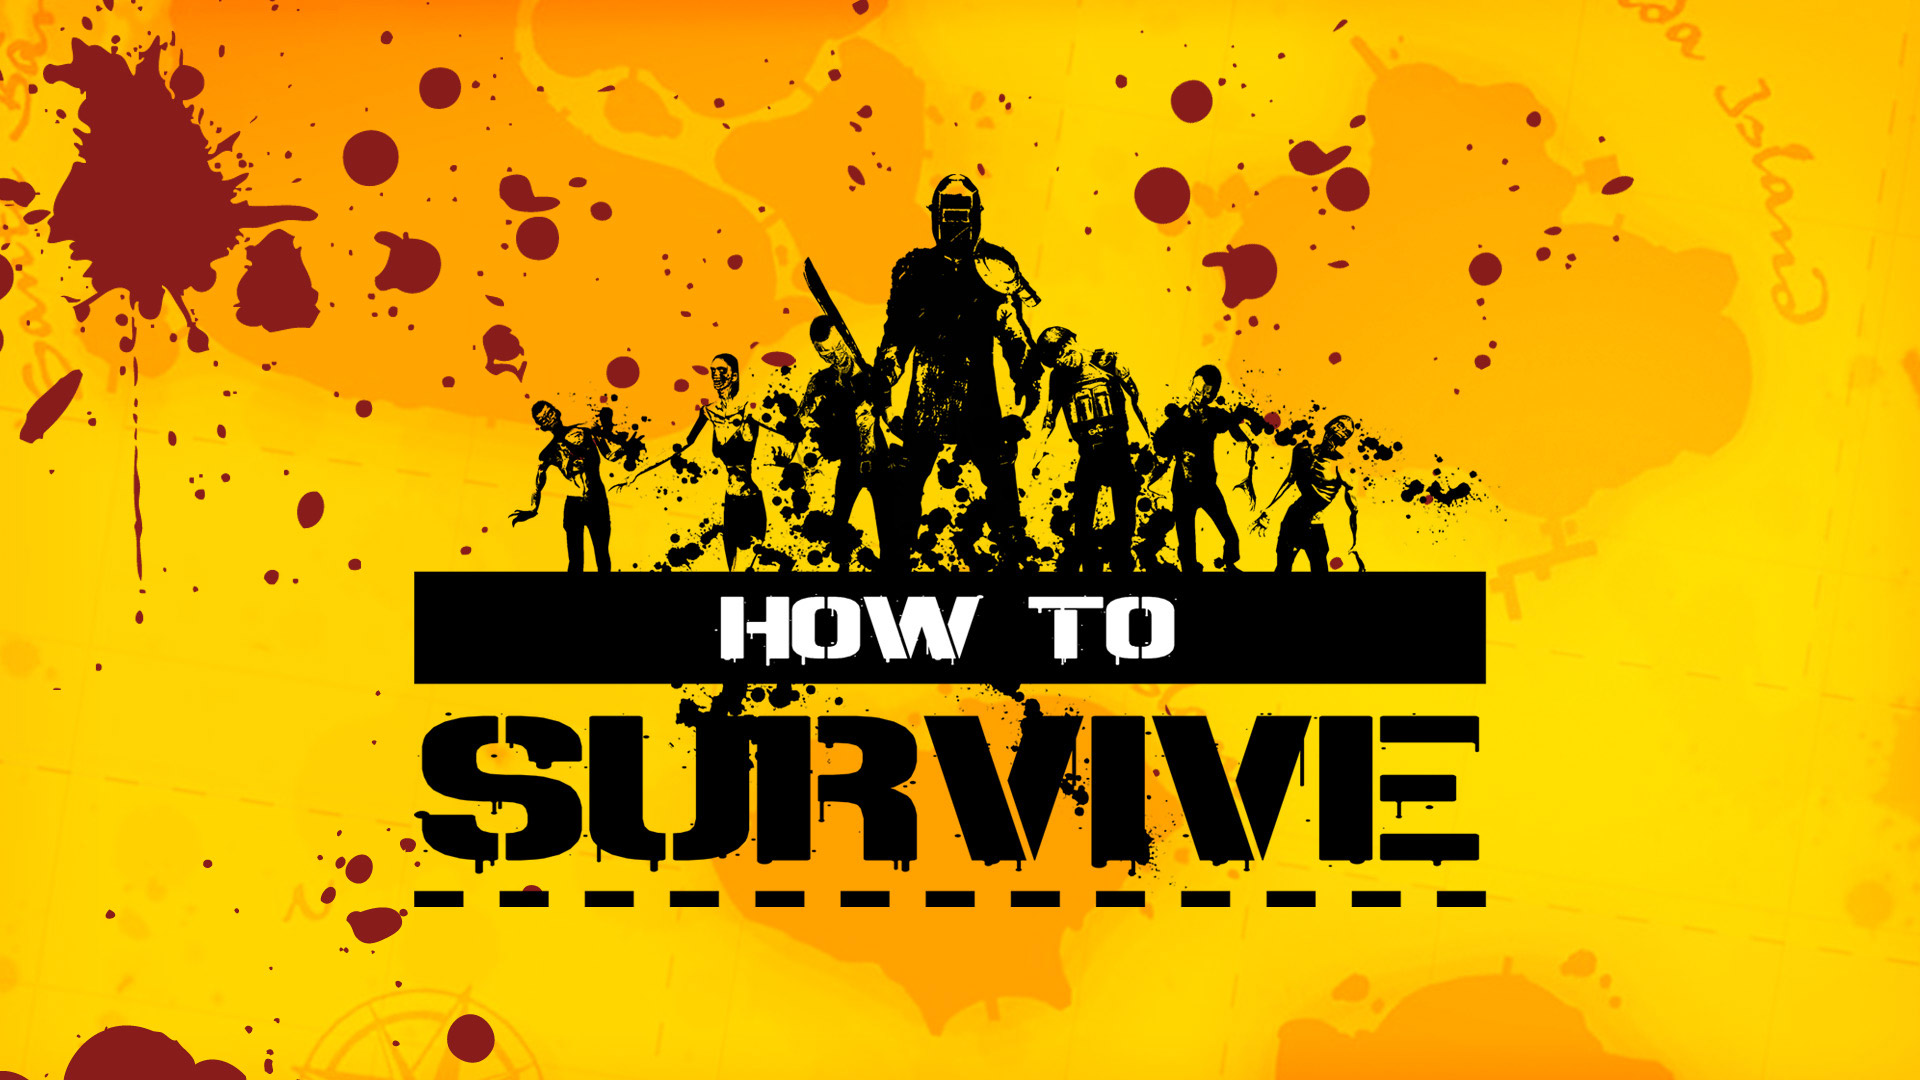 How To Survive Wallpaper in 1920x1080